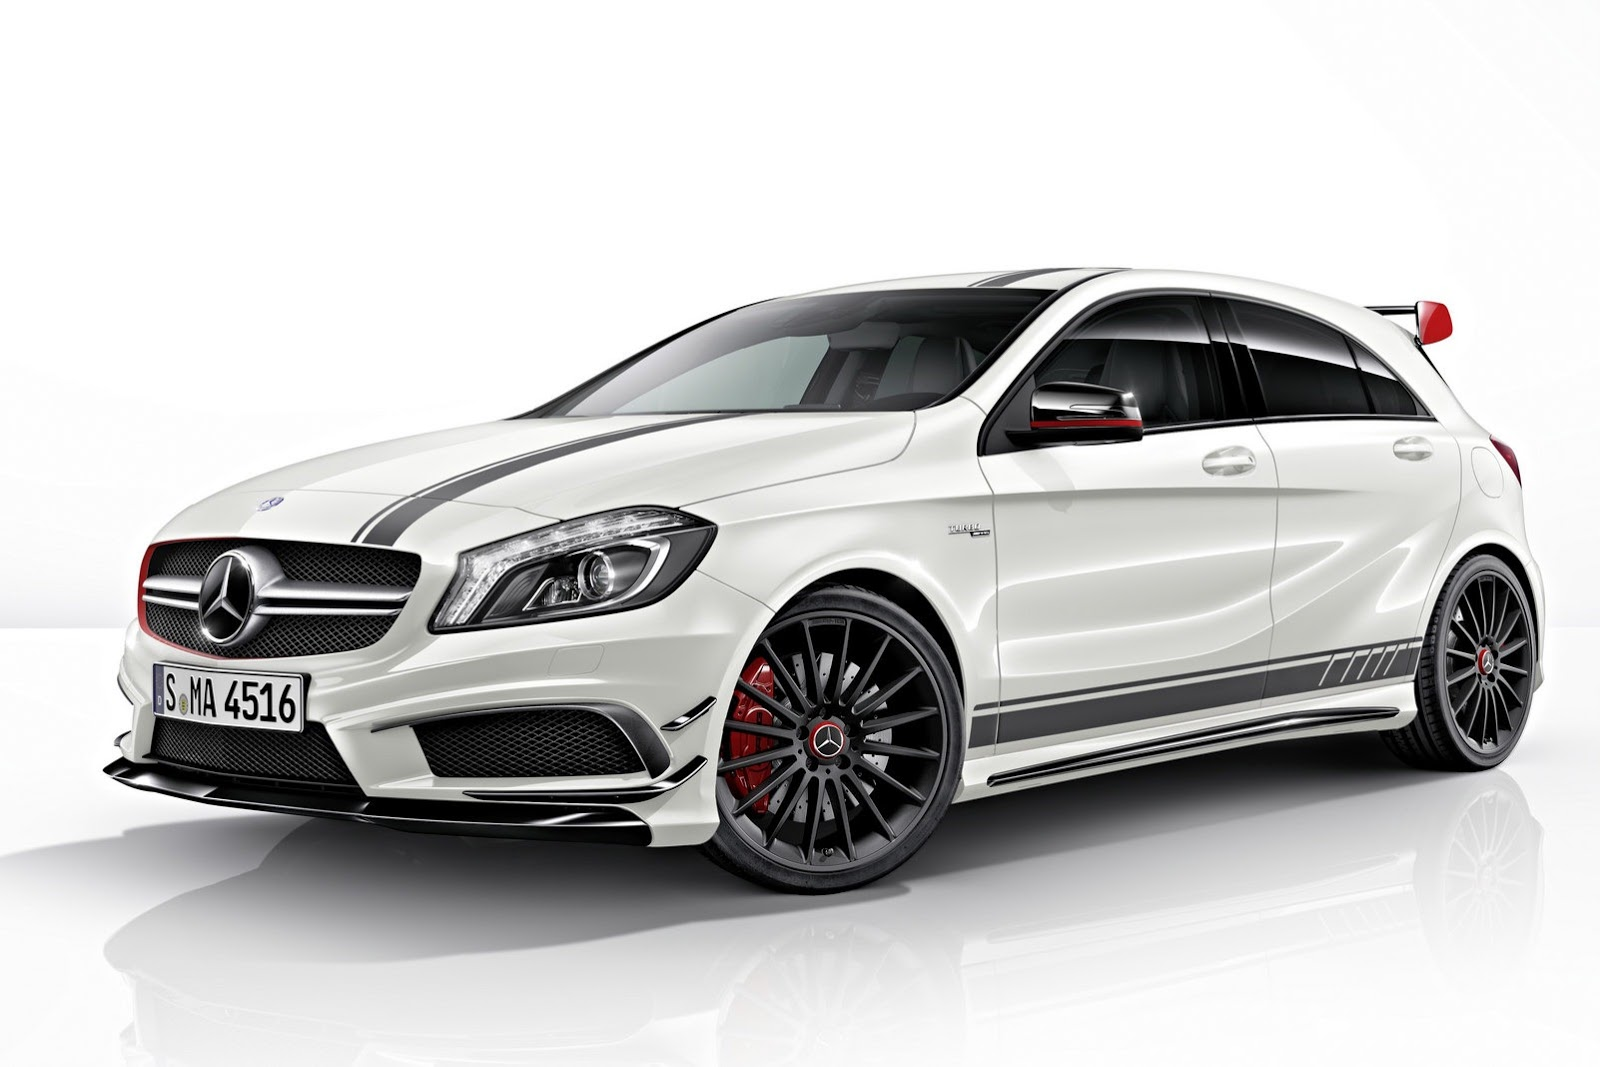 mercedes classe a 45 amg edition 1 prime informazioni e foto ufficiali. Black Bedroom Furniture Sets. Home Design Ideas